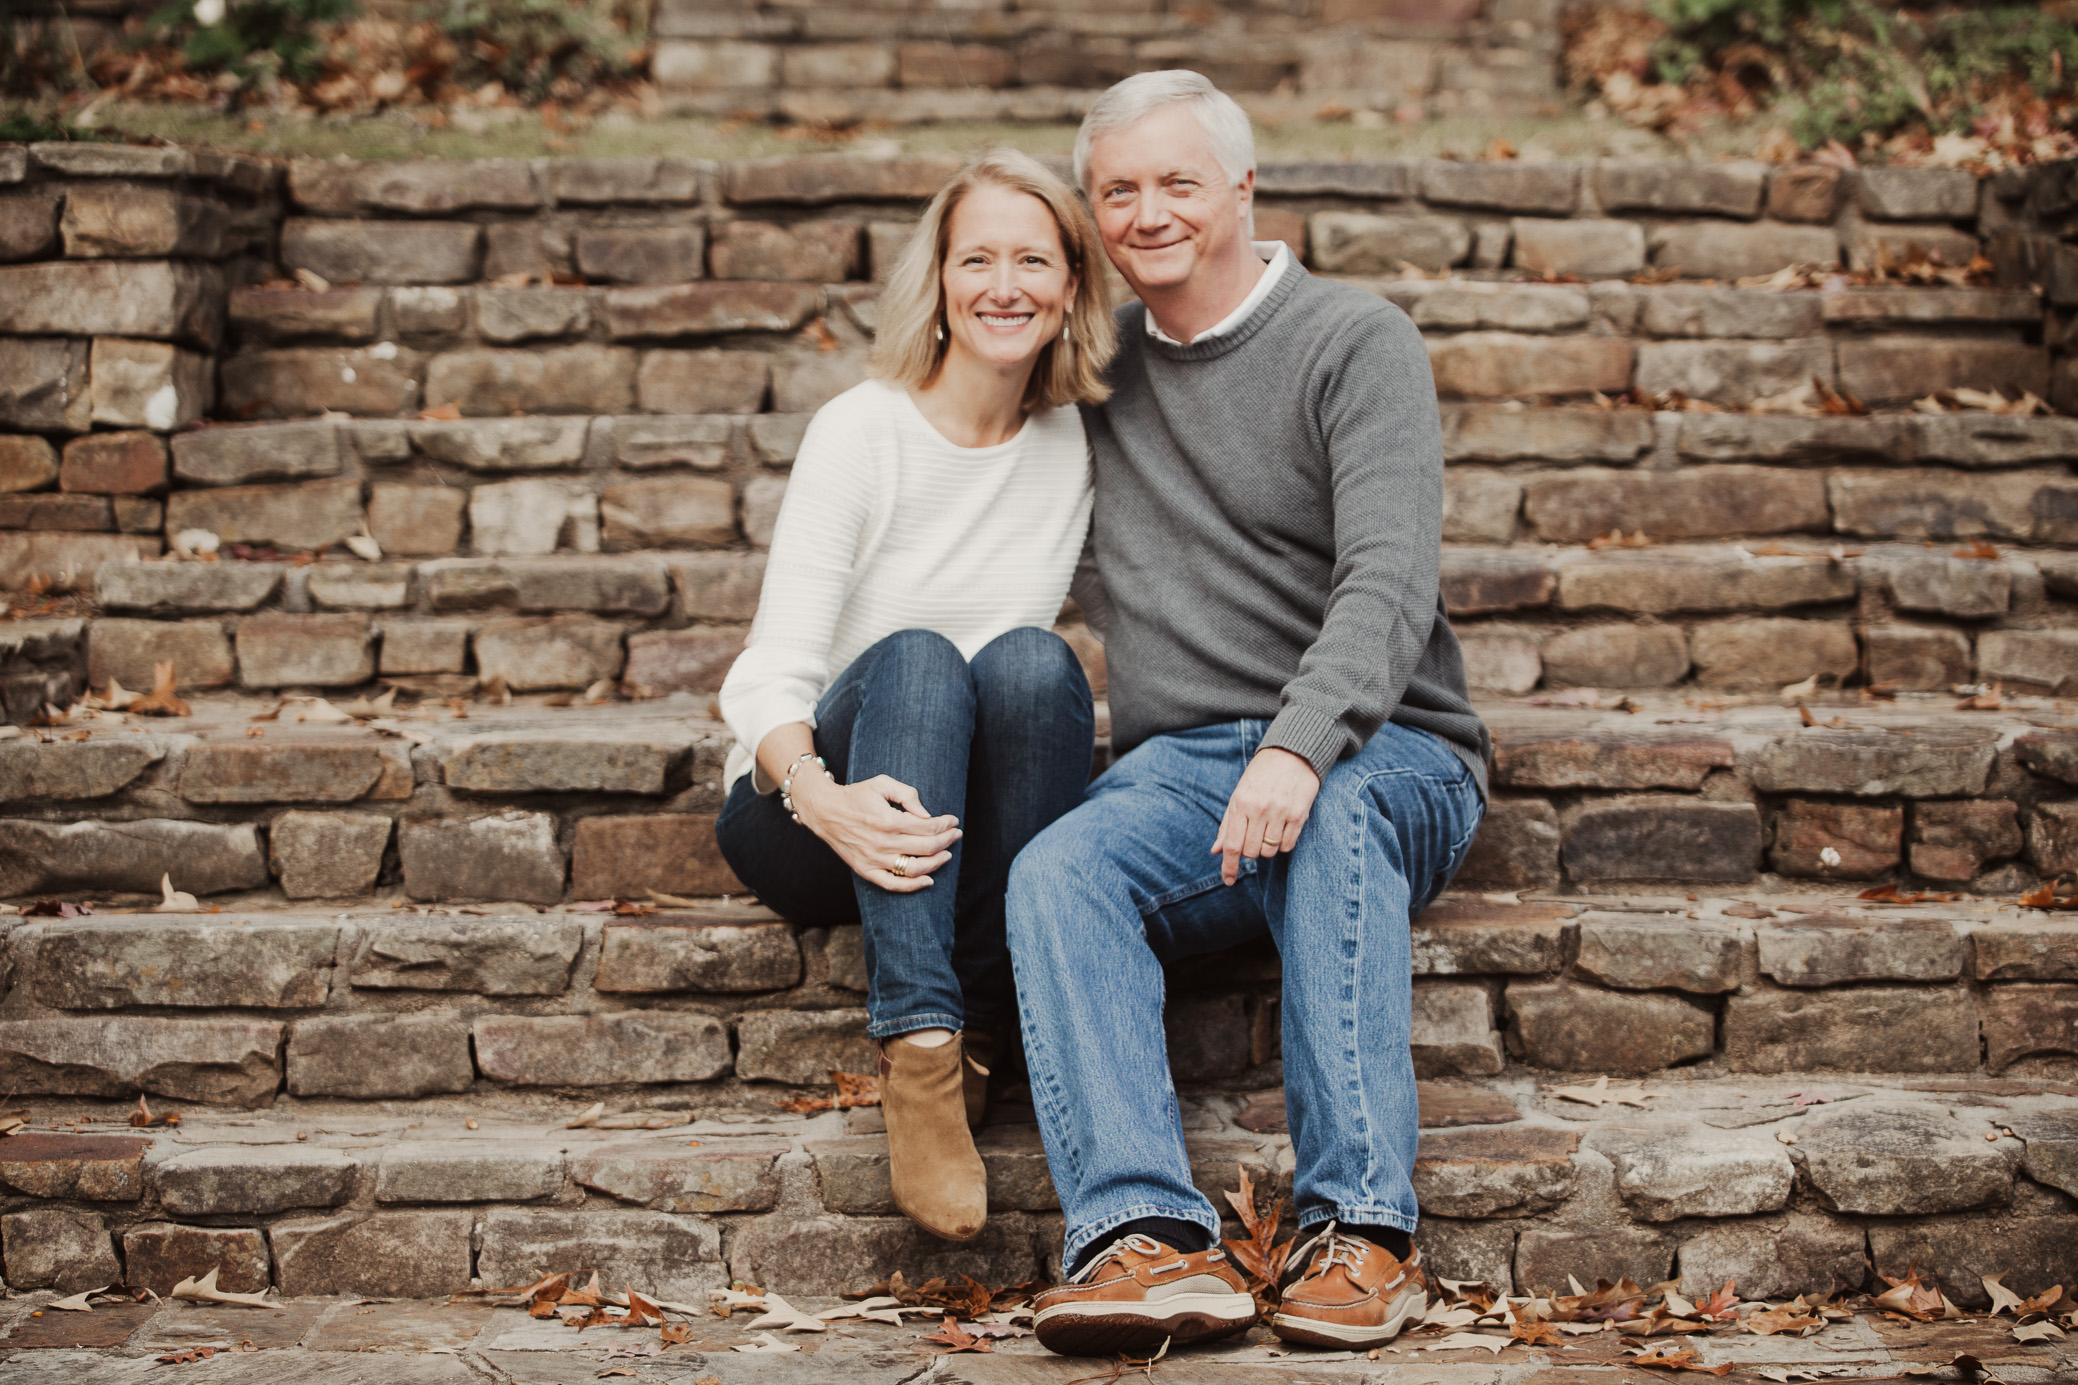 Portrait photography for the Klasing family at the Birmingham Botanical Gardens in Birmingham, Alabama on November 25th, 2017 by David A. Smith of DSmithImages Wedding Photography, Portraits, and Events